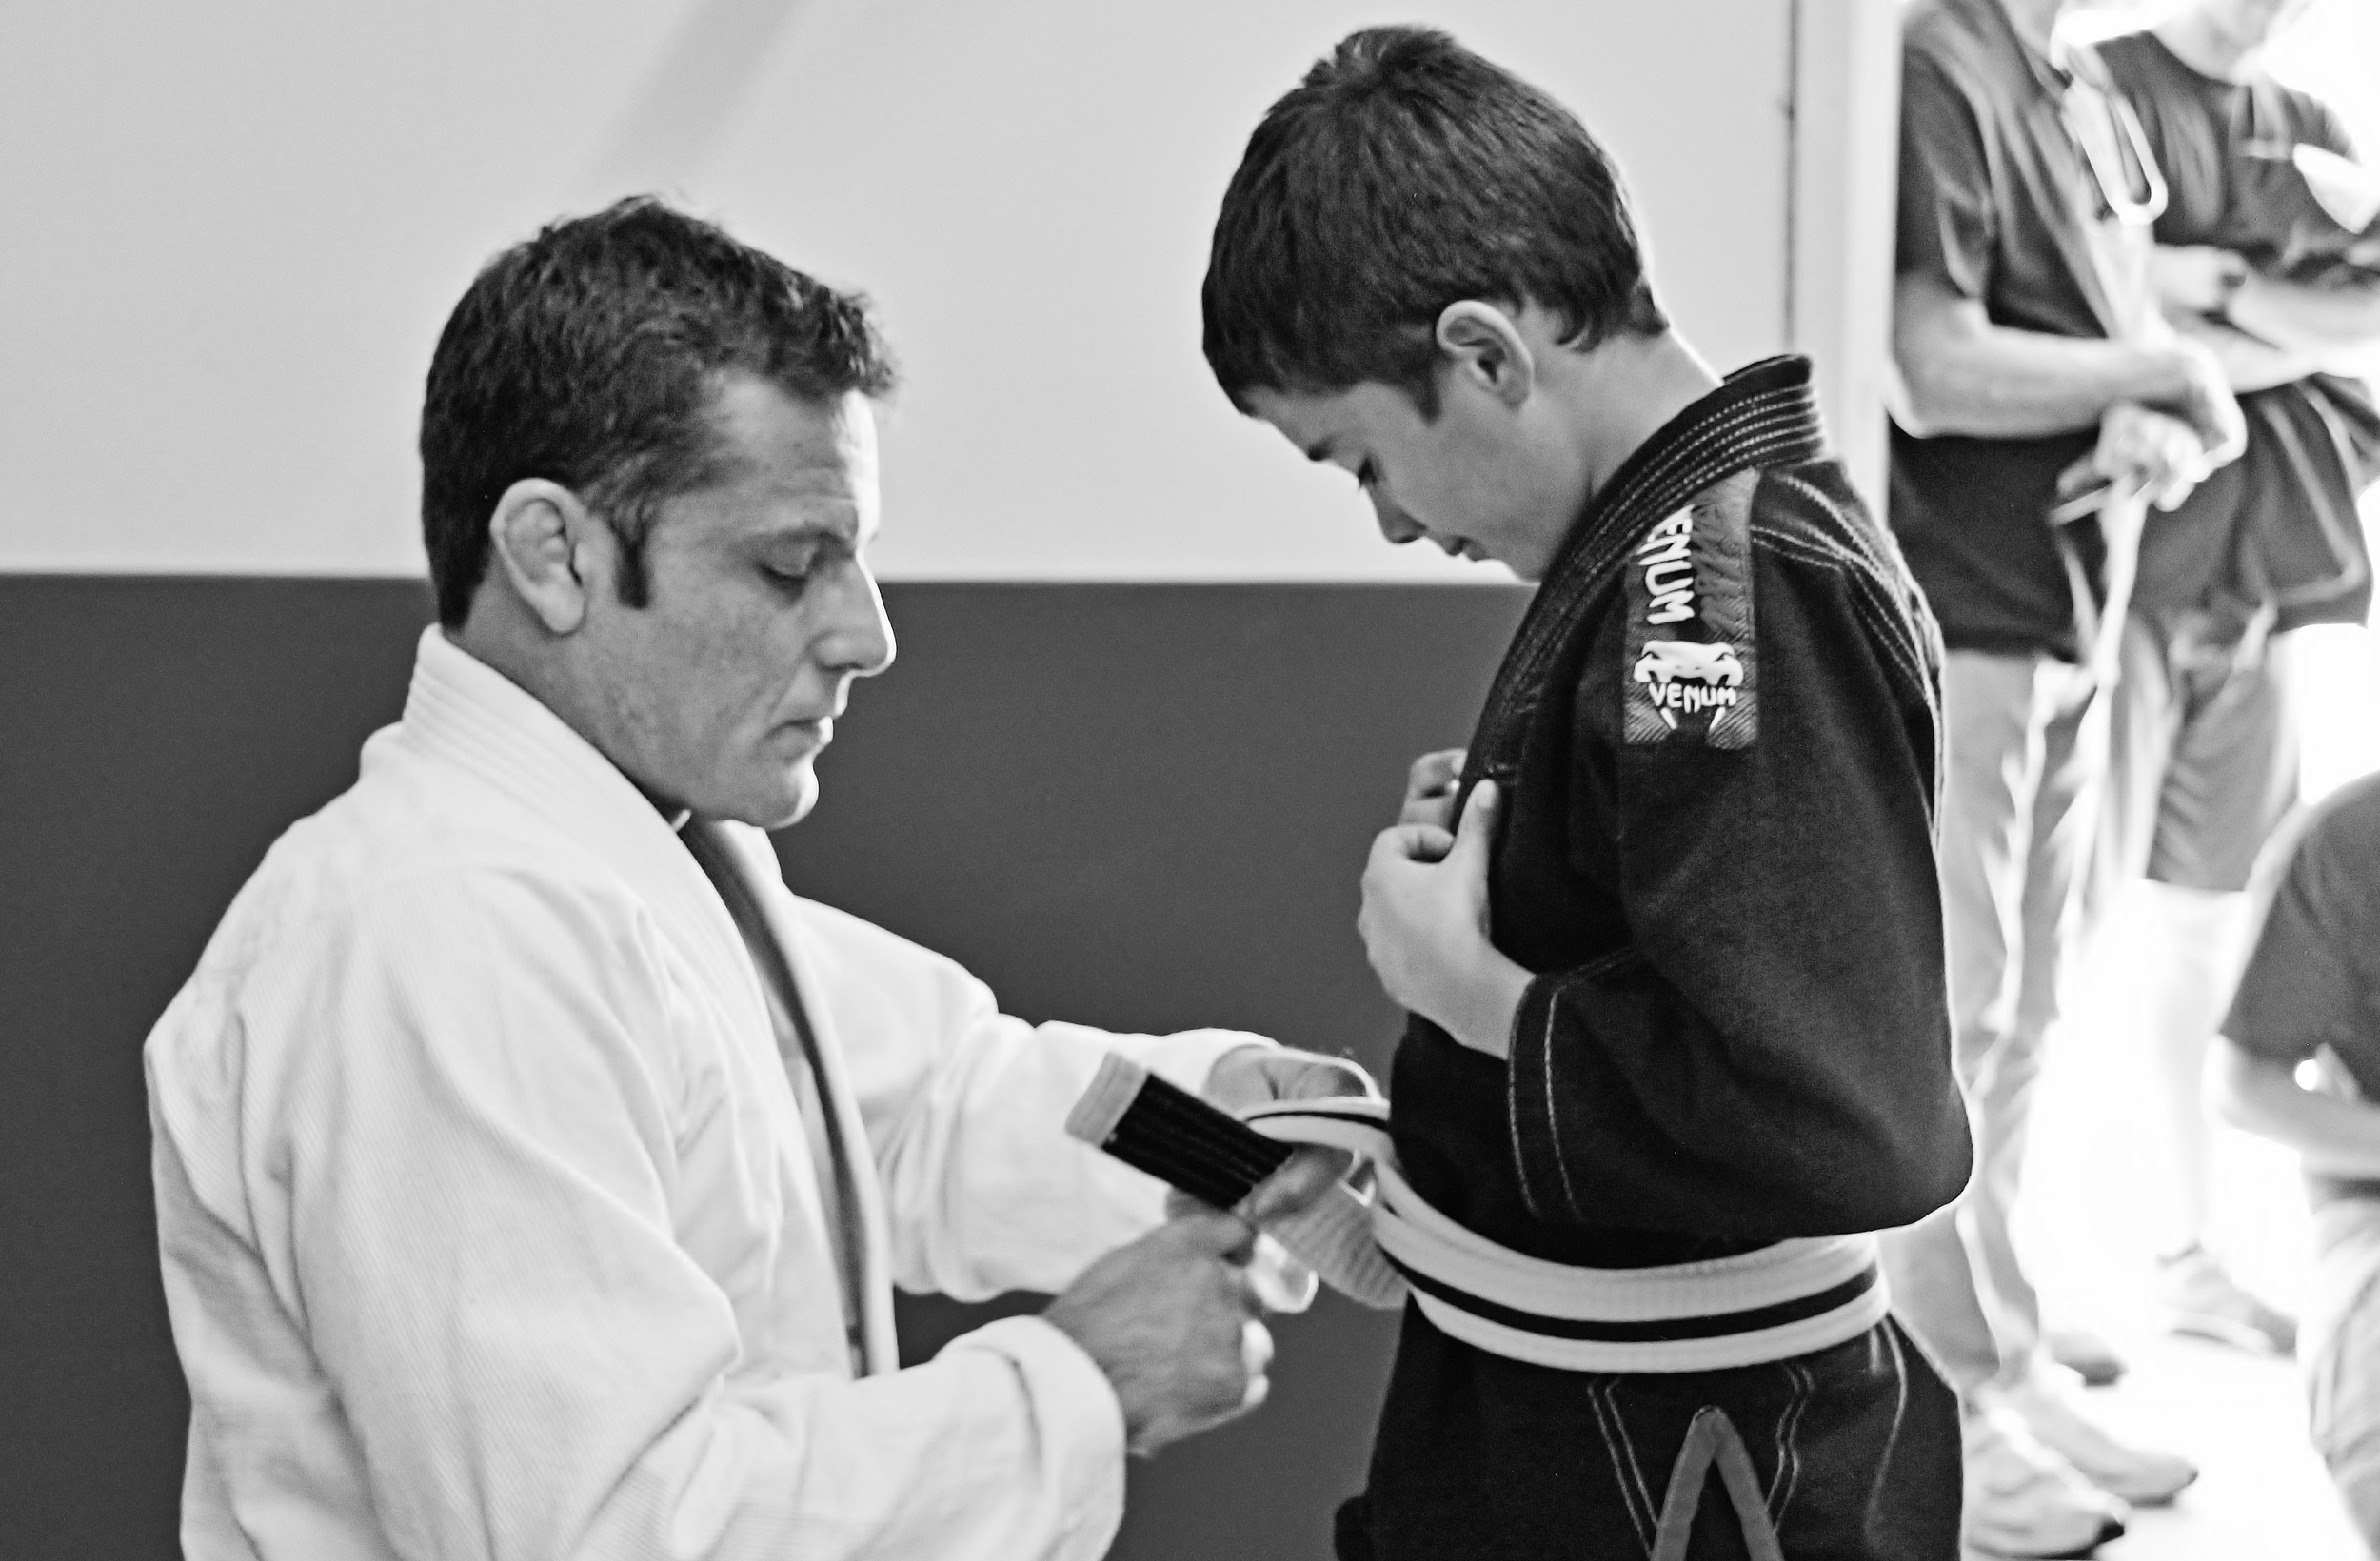 Why chose Brazilian JiuJitsu